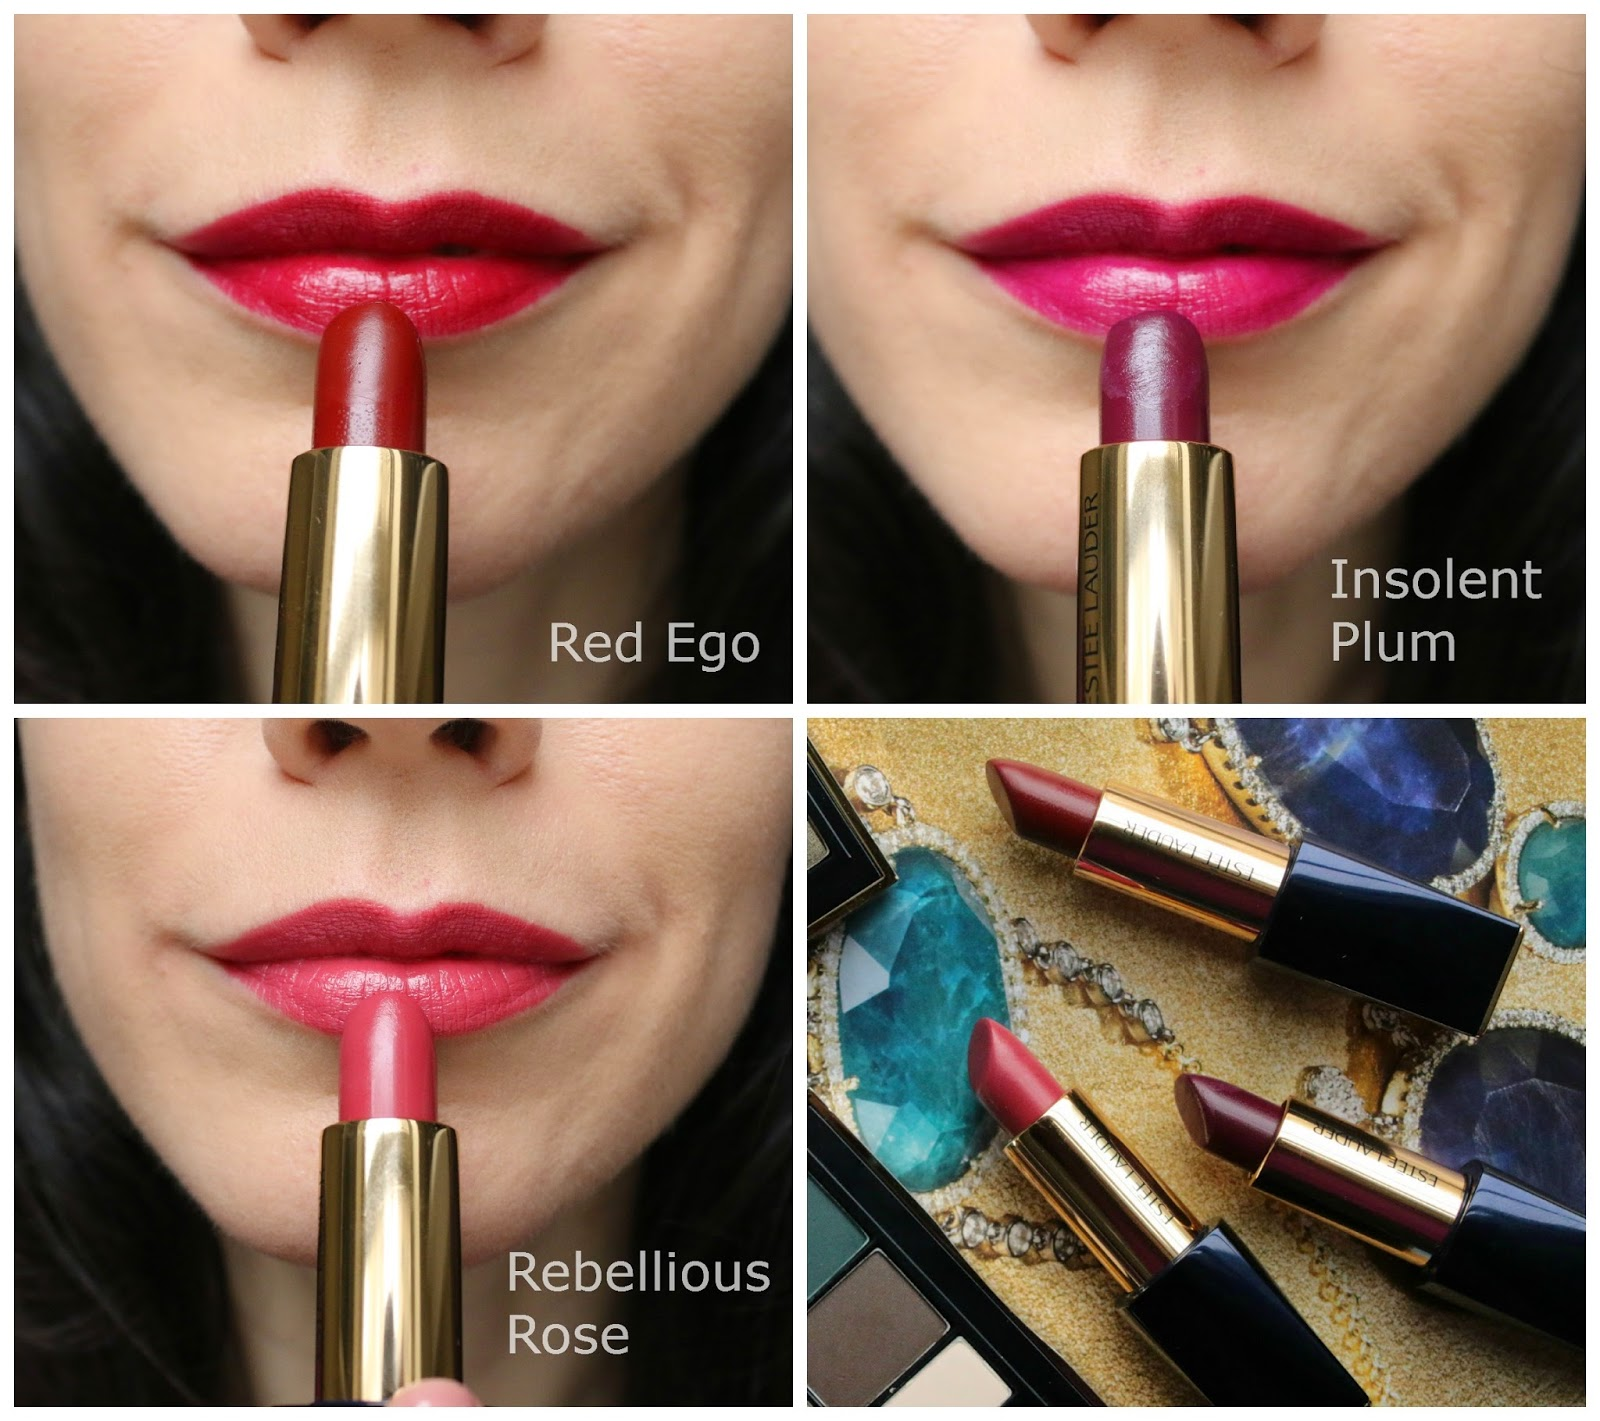 Estee Lauder Pure Color Envy Lipstick Swatches on fair skin